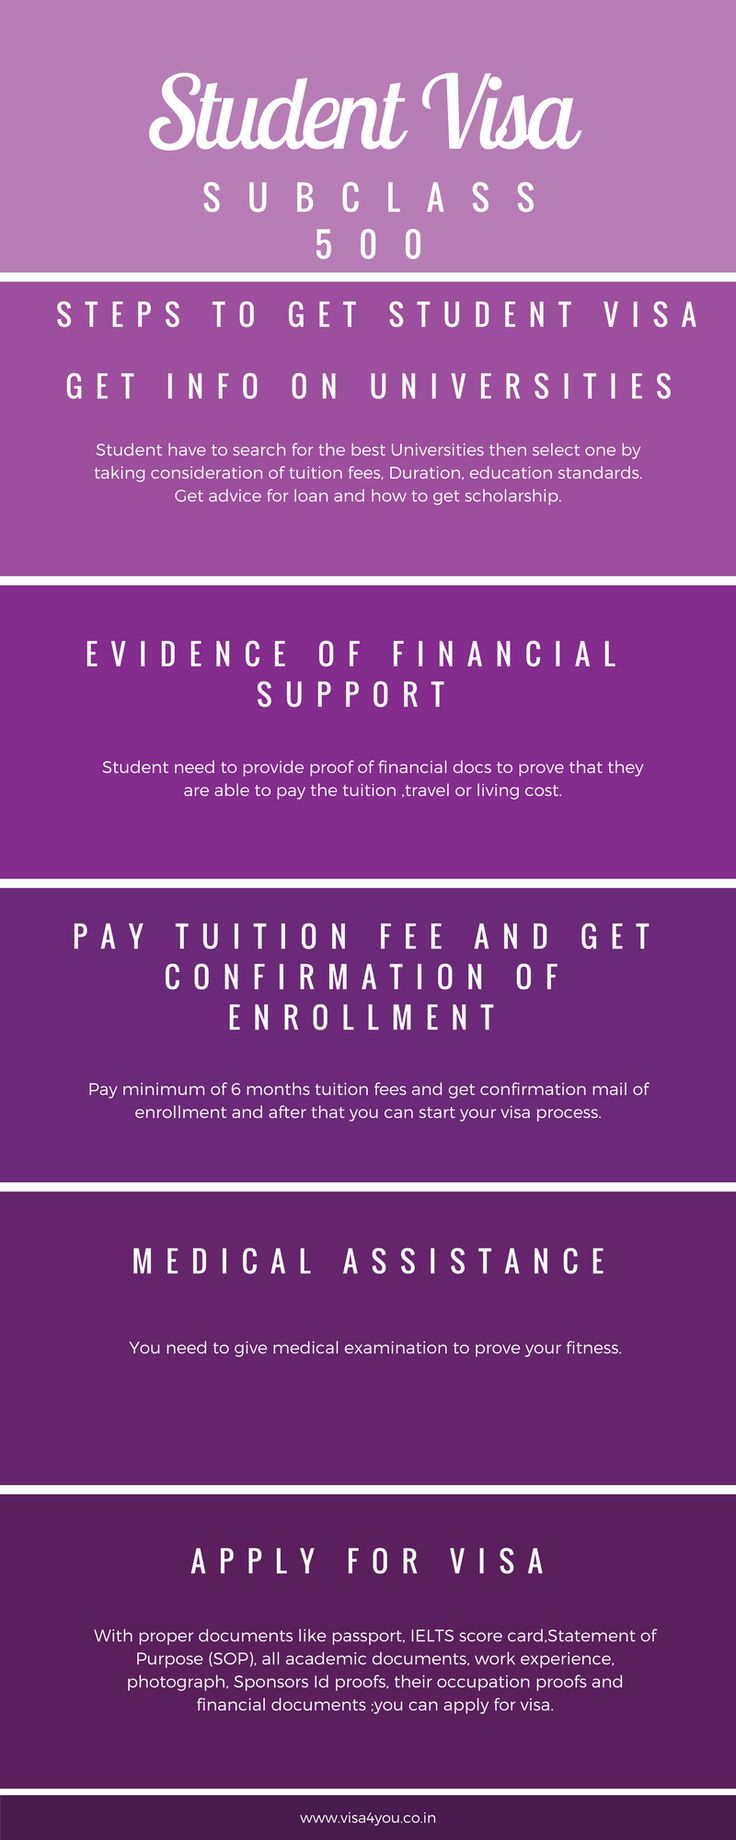 STUDENT VISA Student visa is granted to